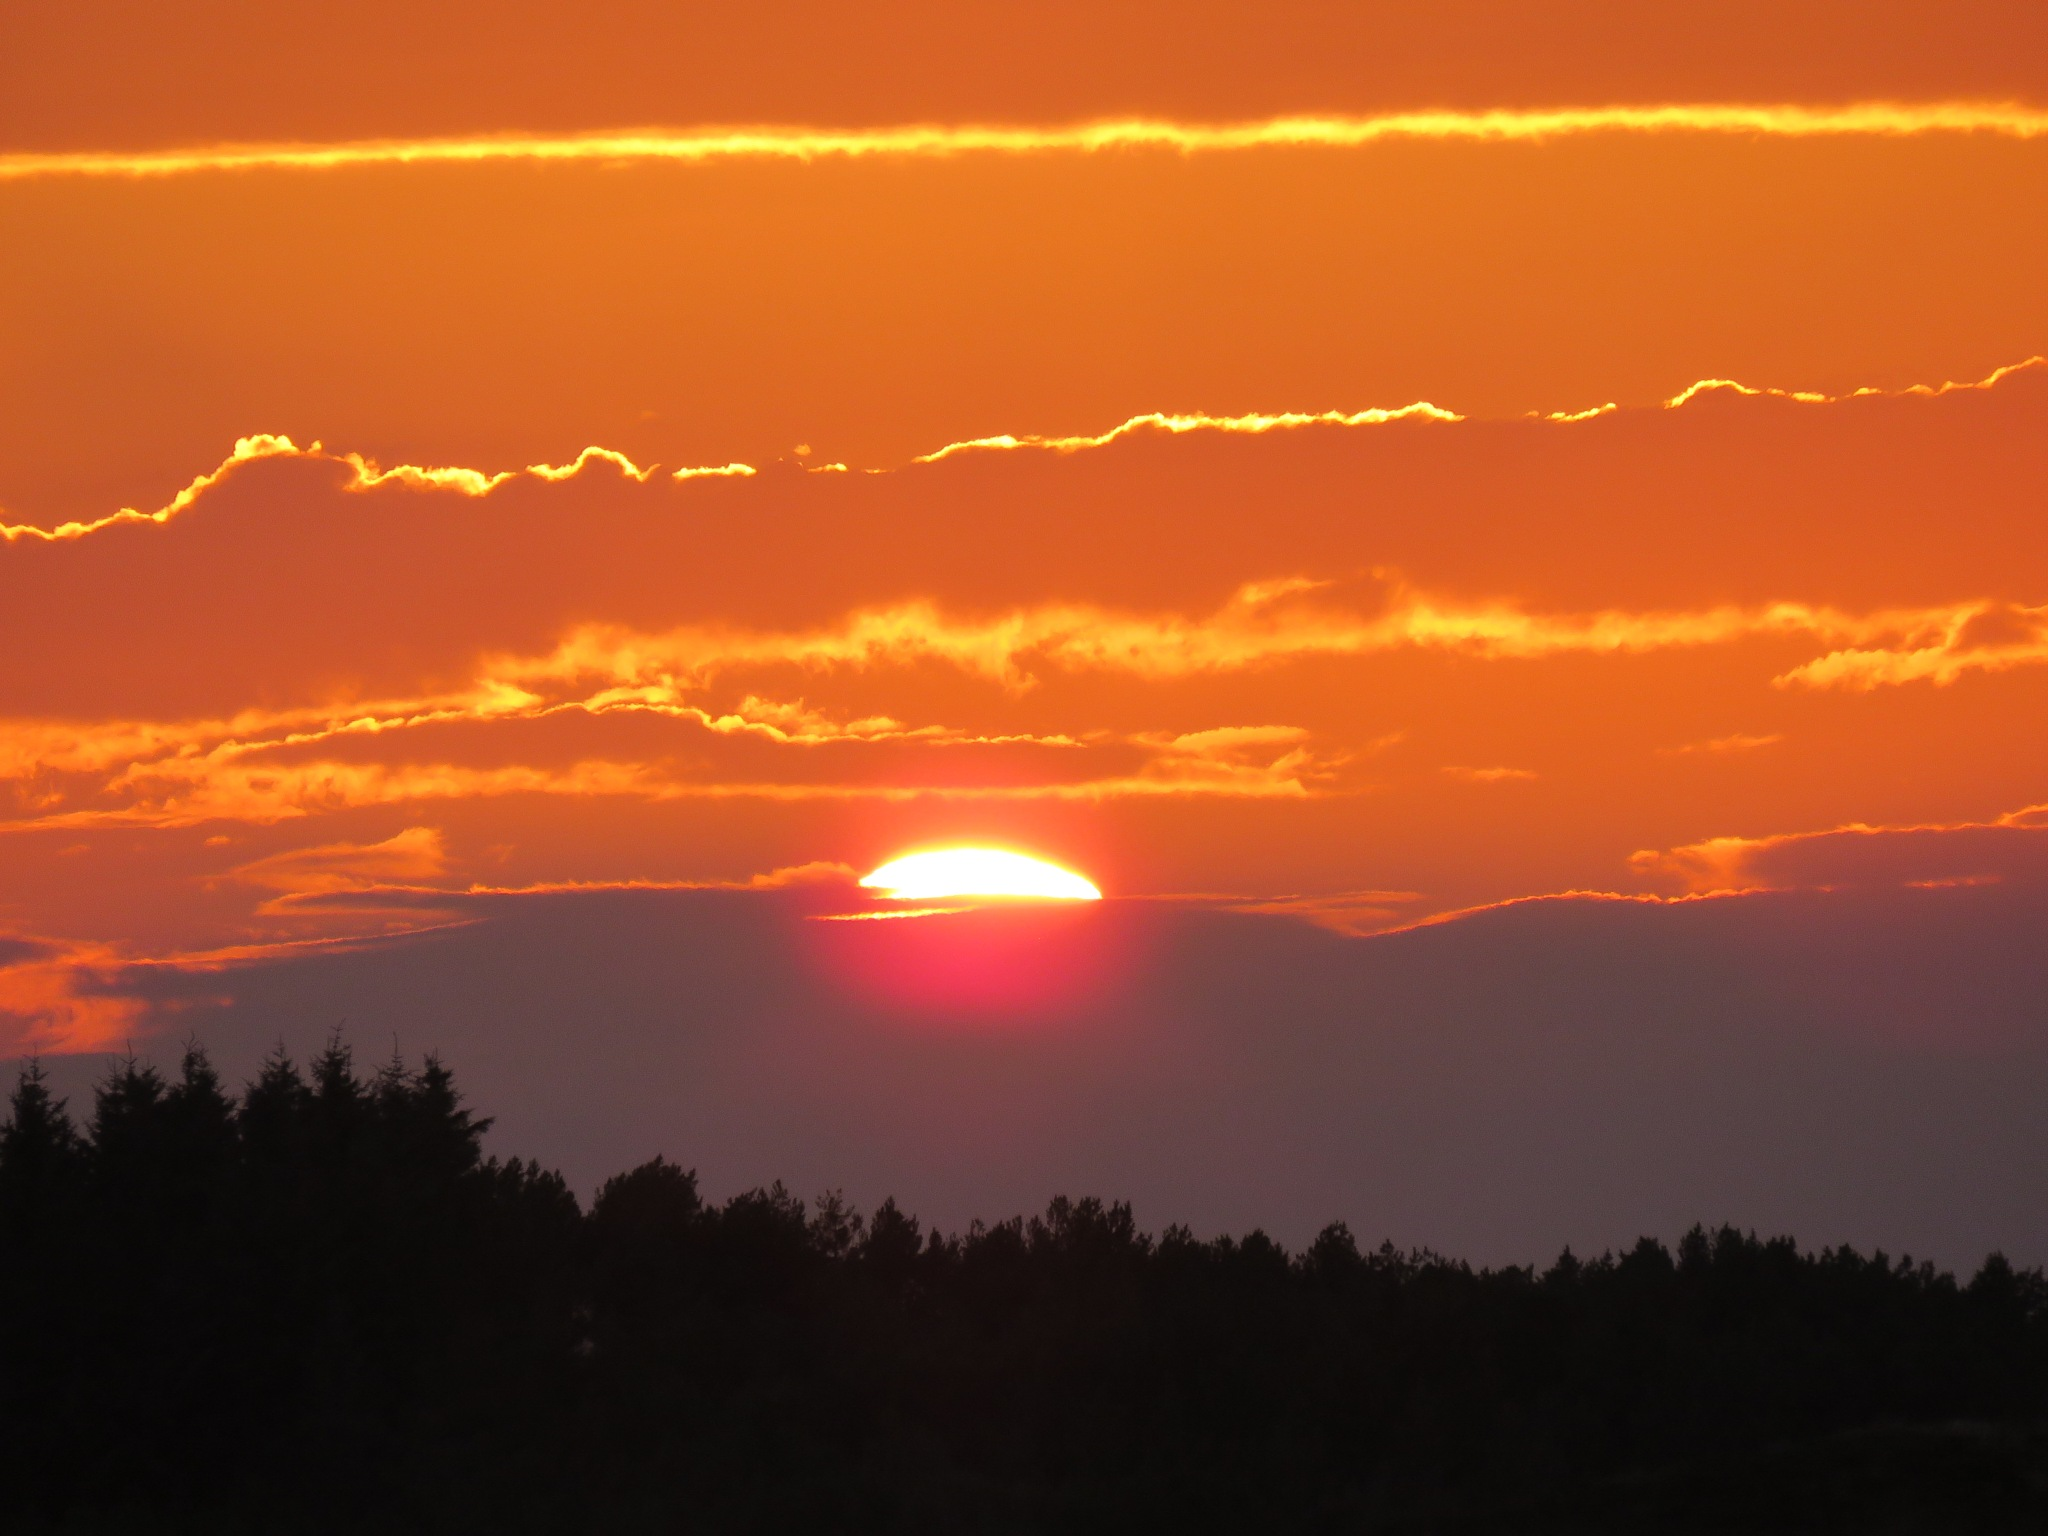 #Sunset by marit